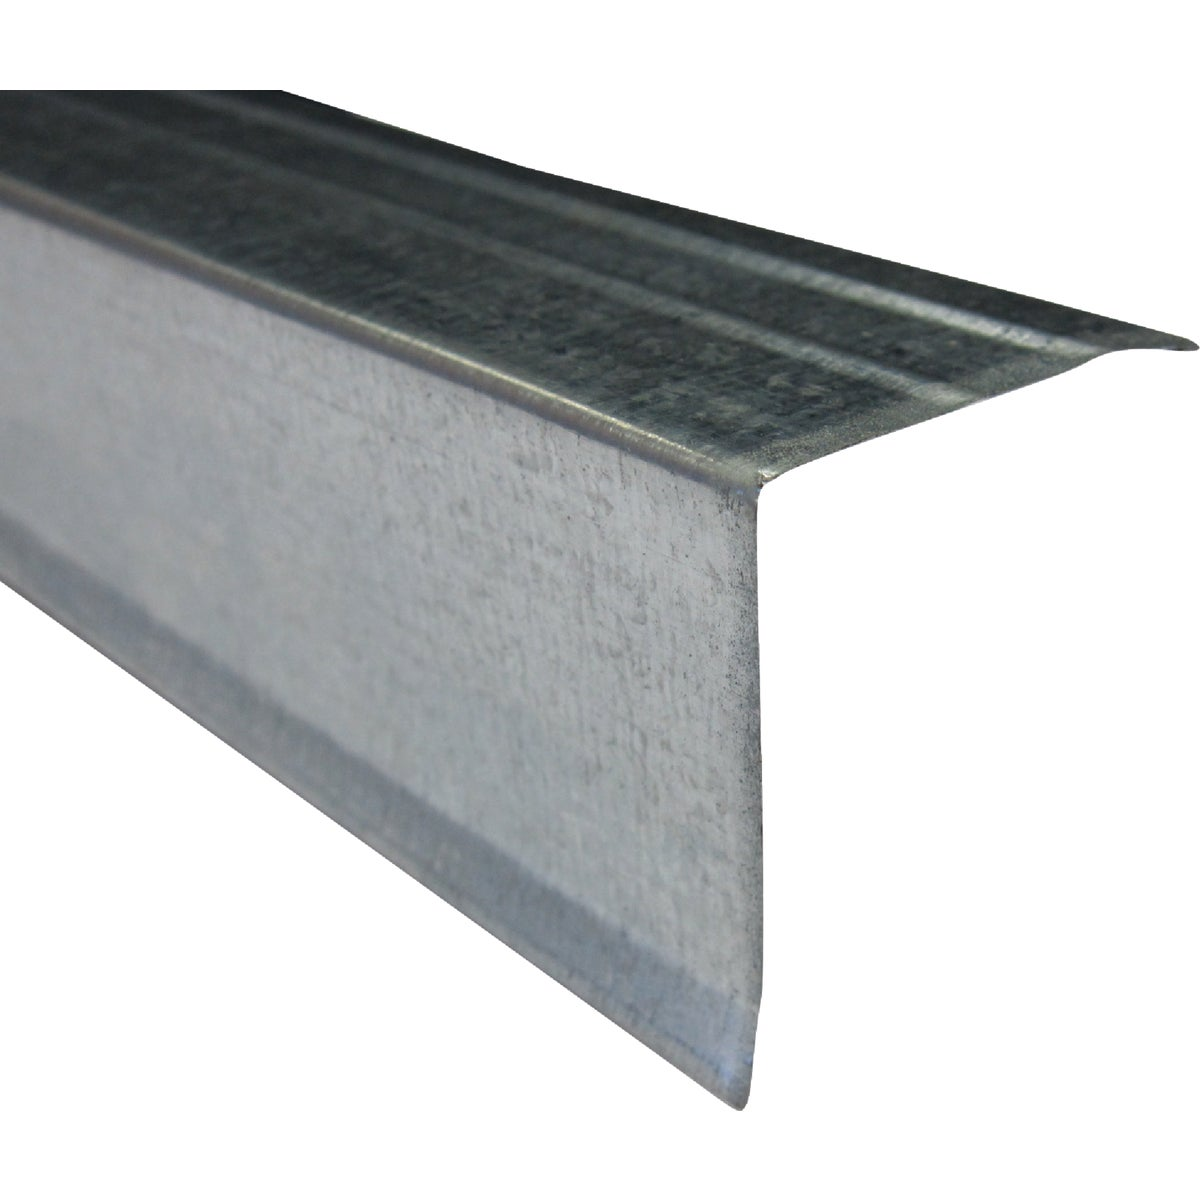 """2""""X10' STYLE A ROOF EDGE"""